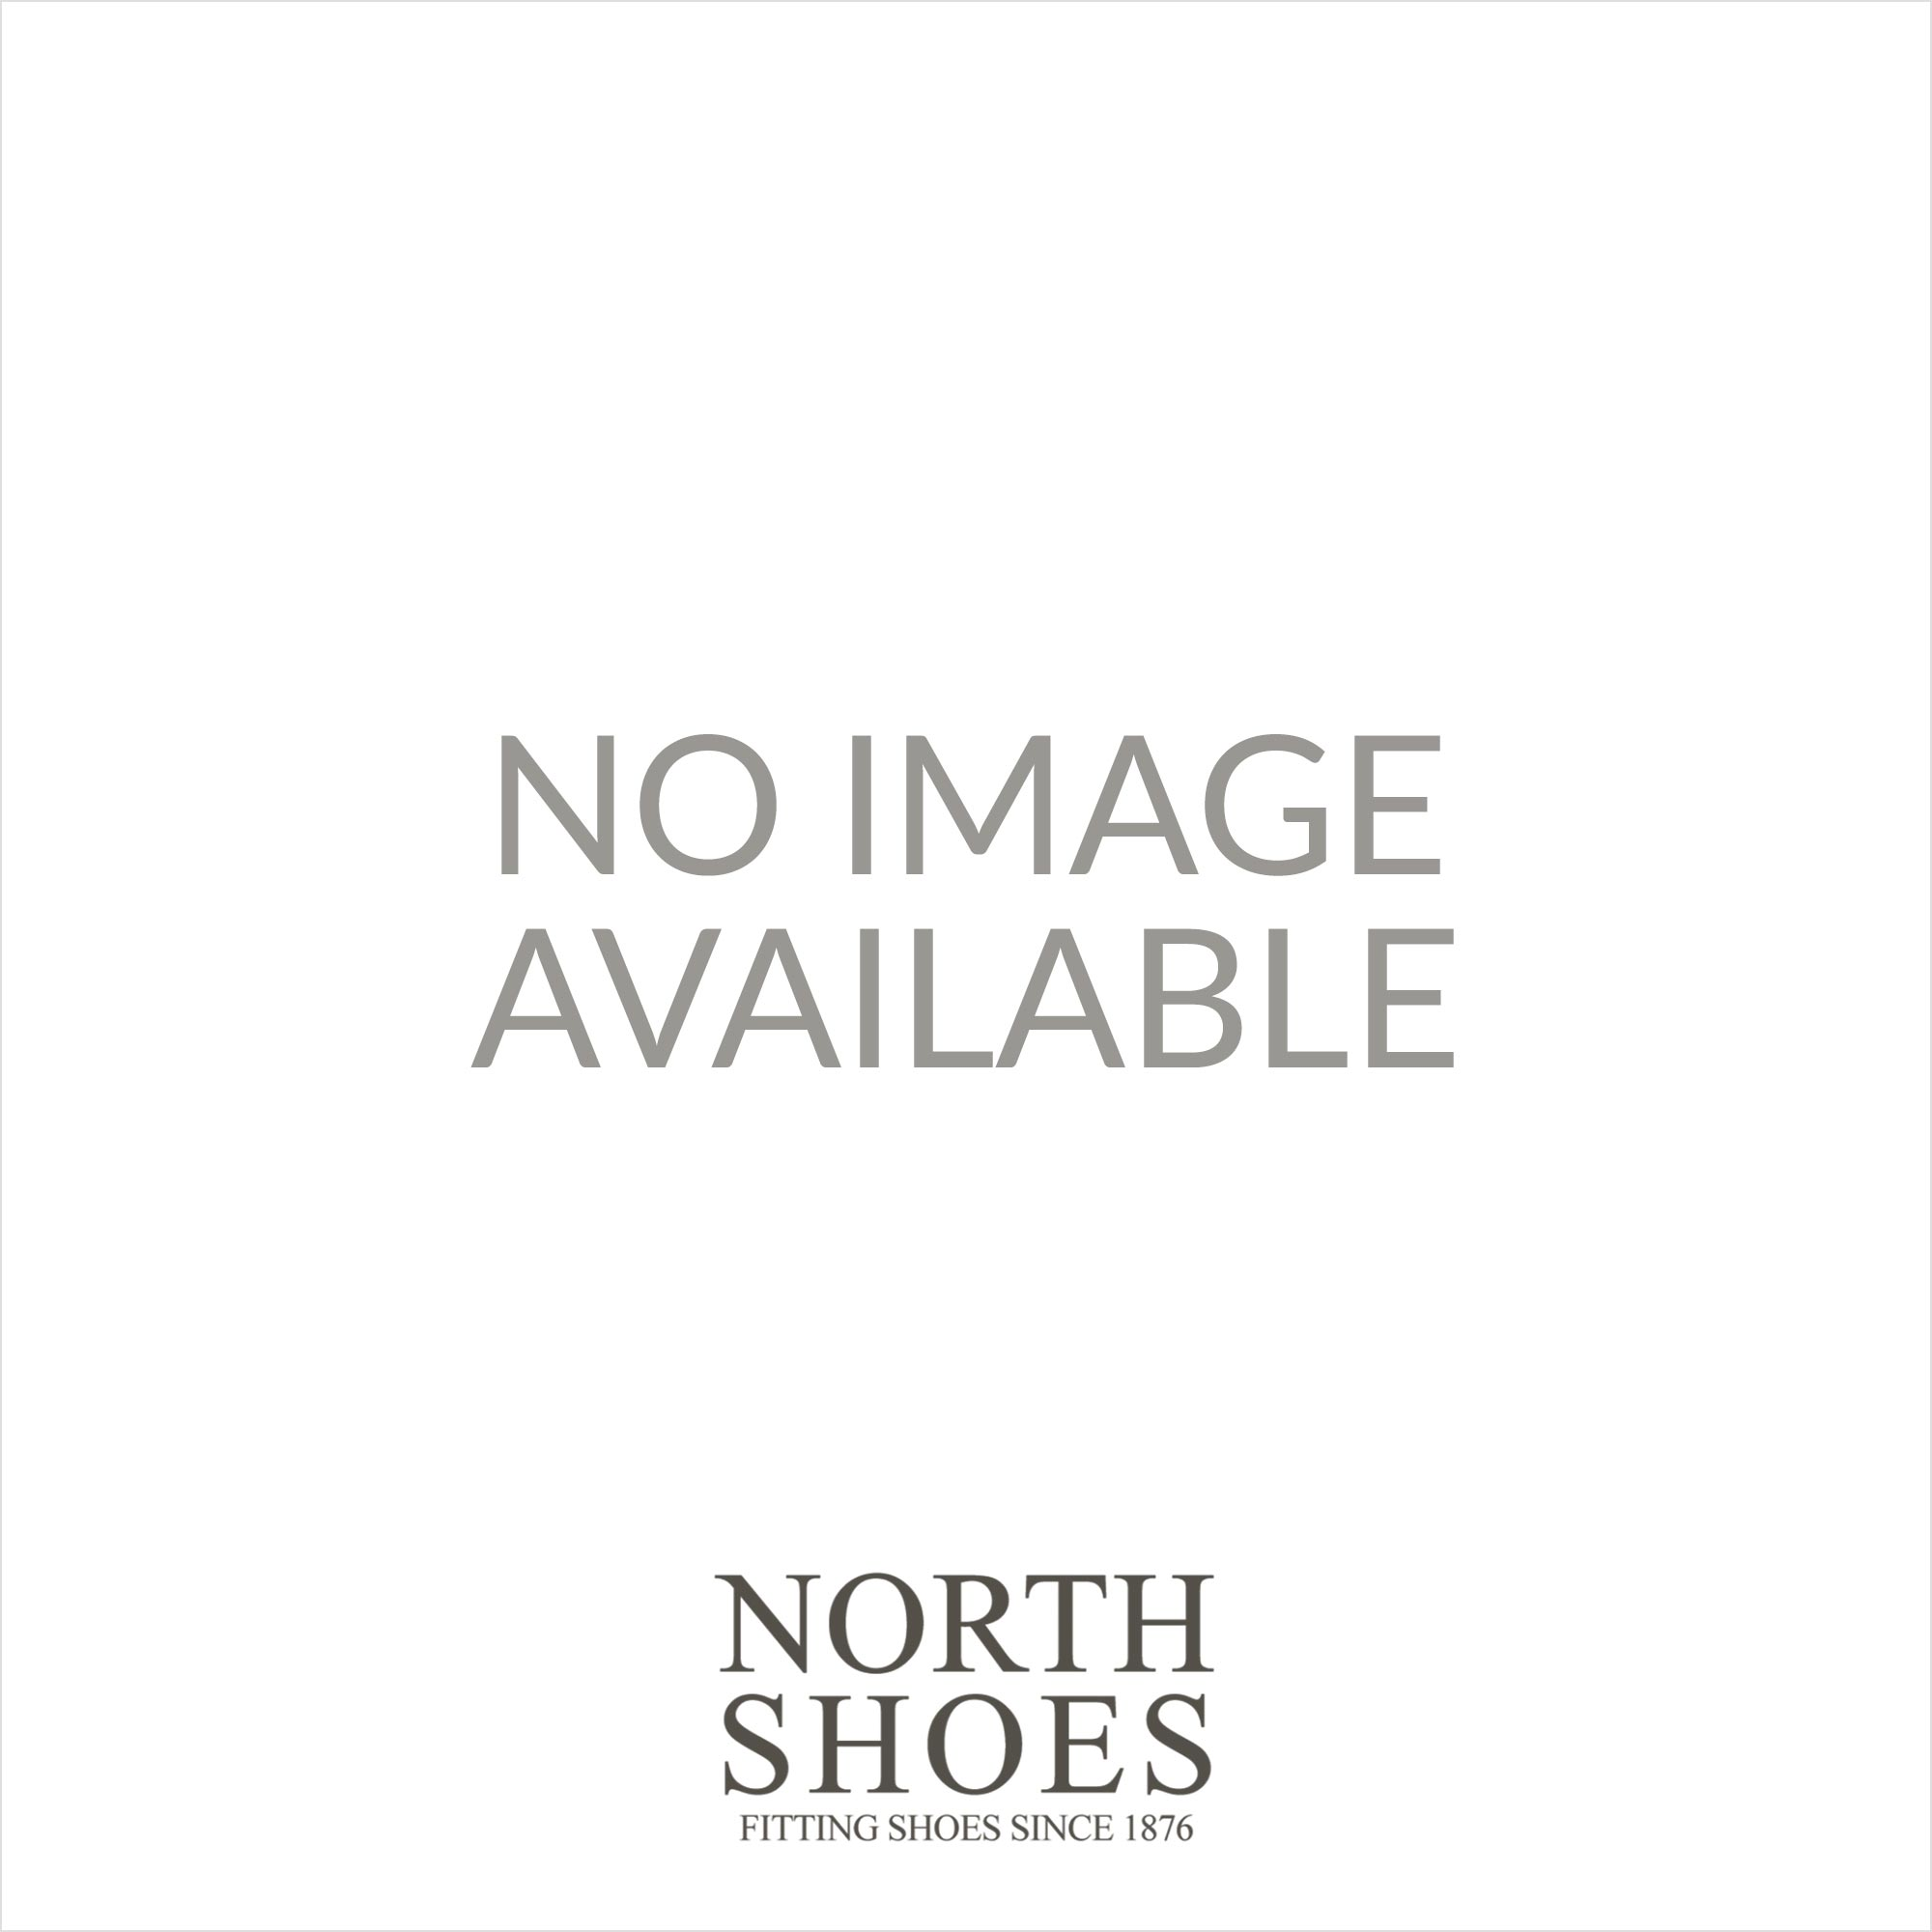 Calpe Black Suede Leather Womens Slingback Espadrille Wedge Sandal